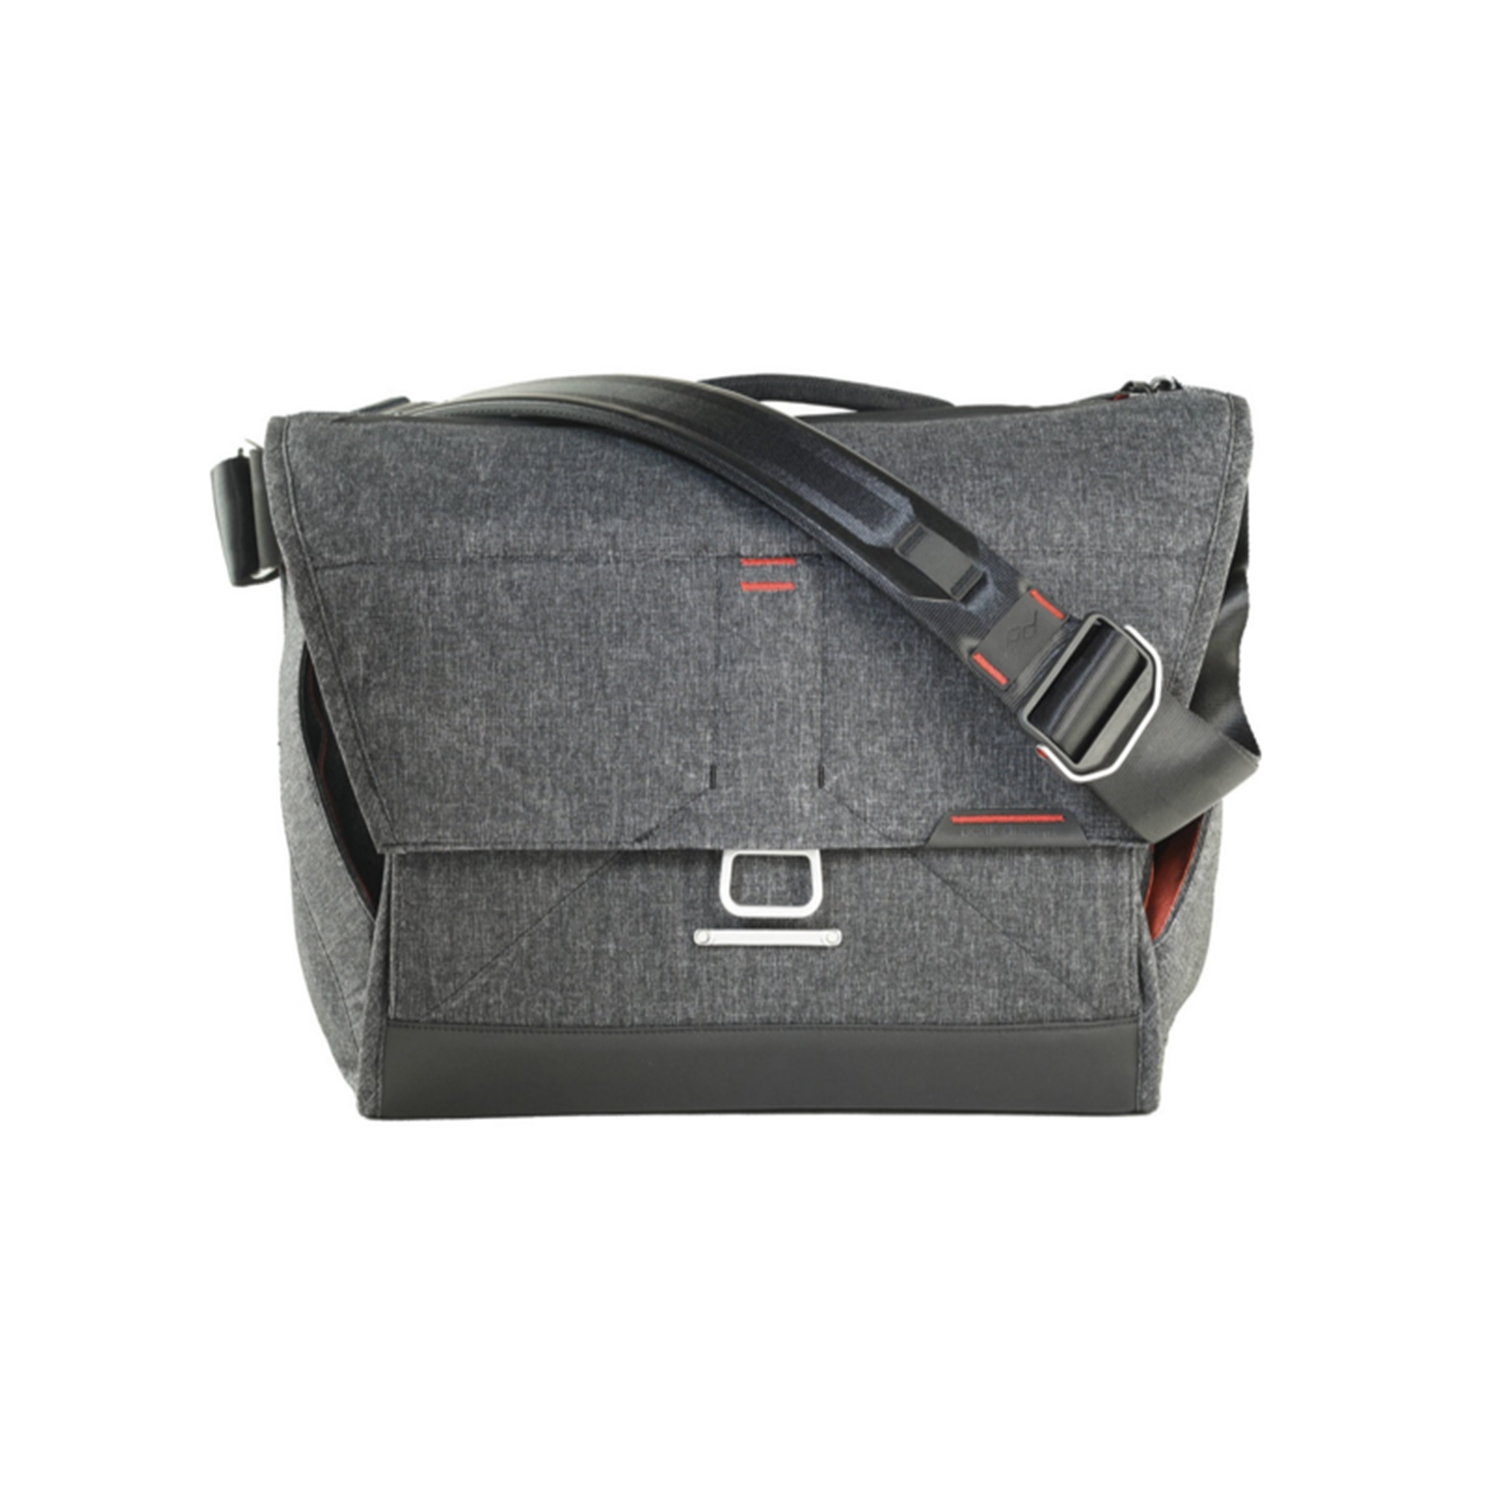 Peak Design Everyday Messenger Bag (Charcoal)